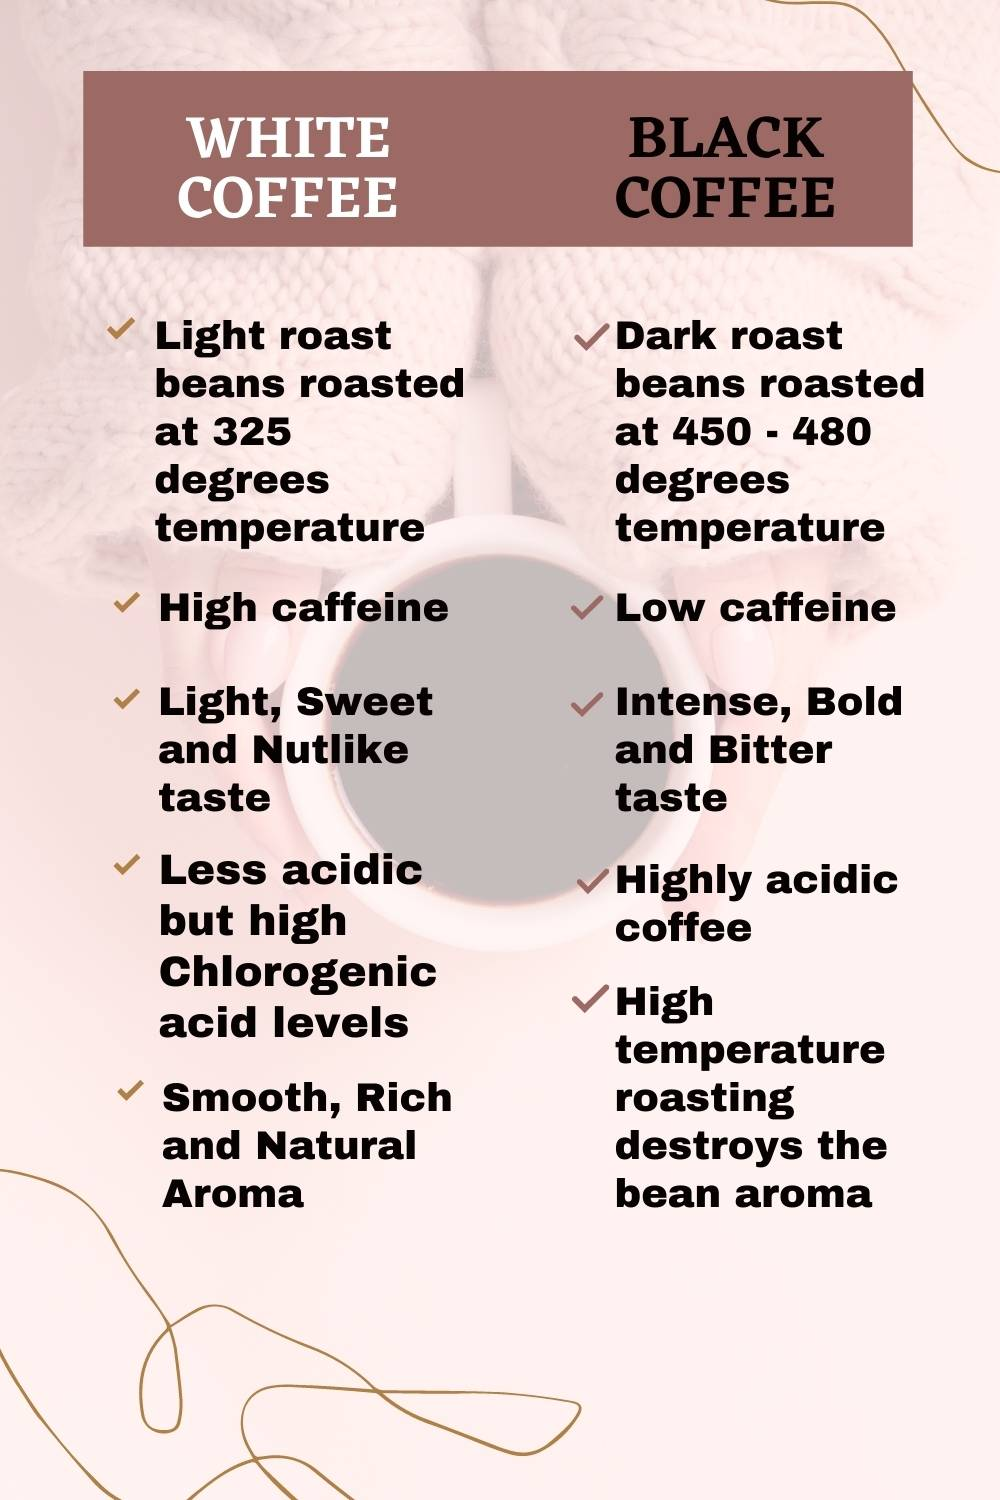 White Coffee vs. Black Coffee